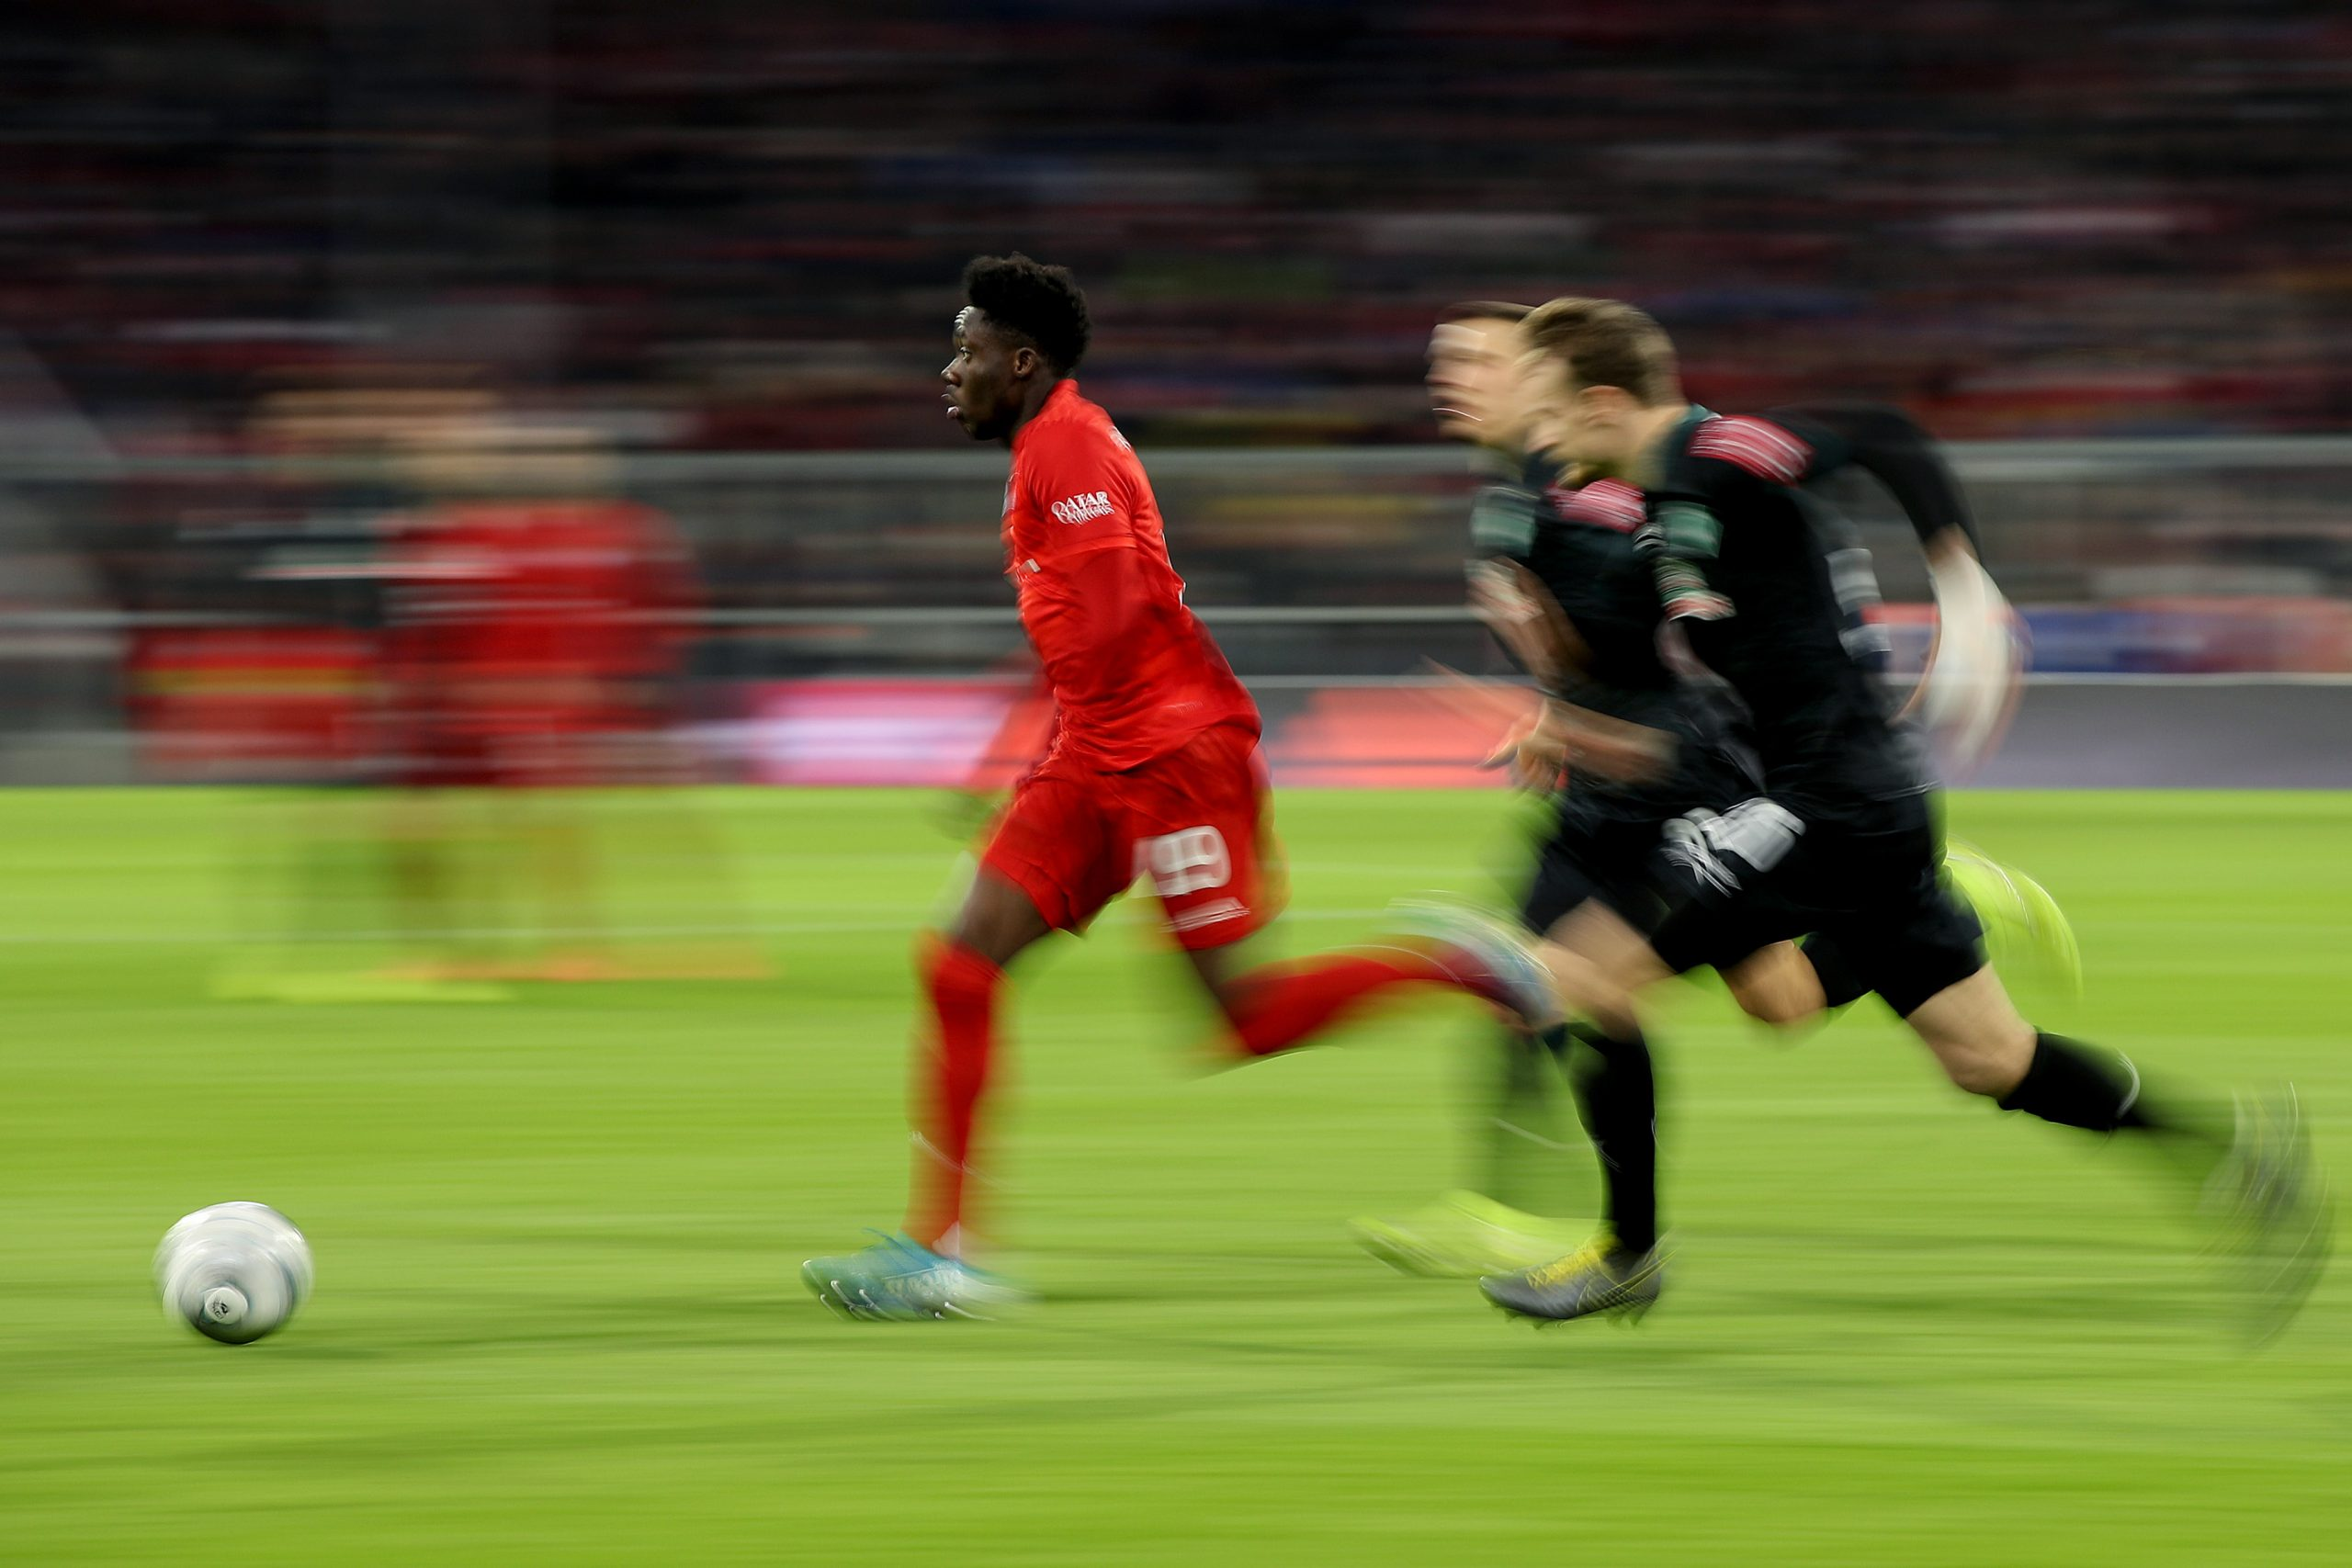 14 December 2019: Bayern Munich's Alphonso Davies battles for the ball during a Bundesliga match against Werder Bremen in Munich, Germany. (Photograph by Alexander Hassenstein/ Bongarts/ Getty Images)